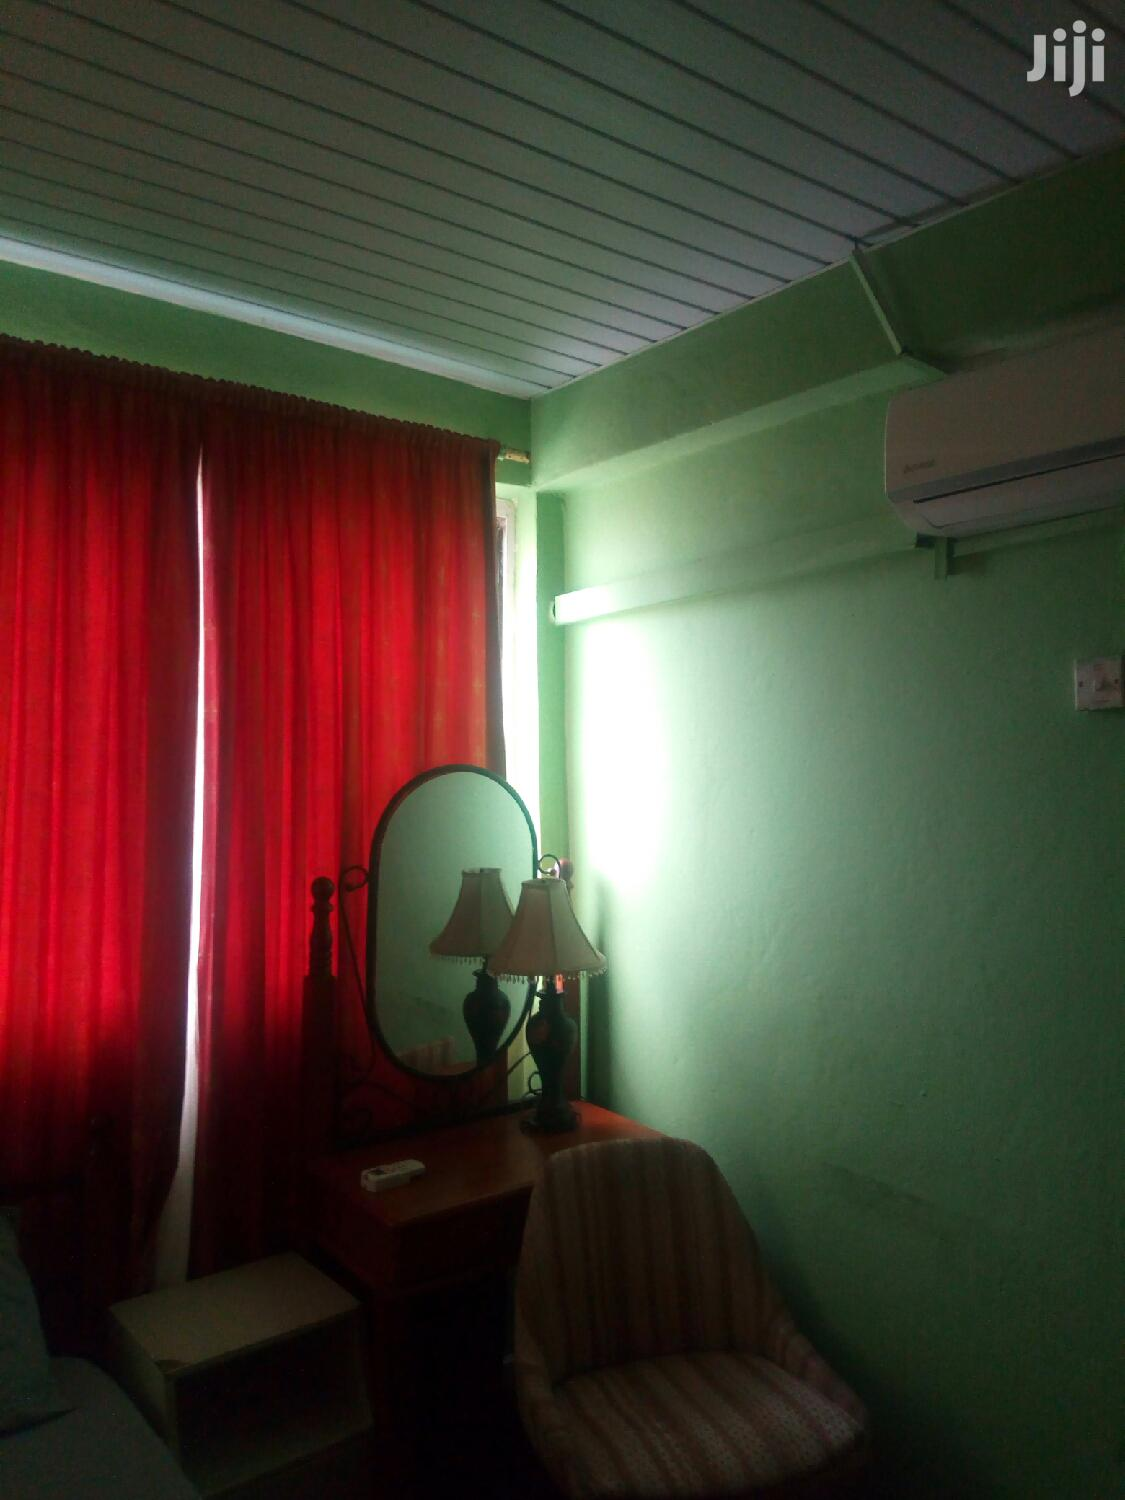 1 Bedroom Furnished Studio to Let Osu | Houses & Apartments For Rent for sale in Osu, Greater Accra, Ghana